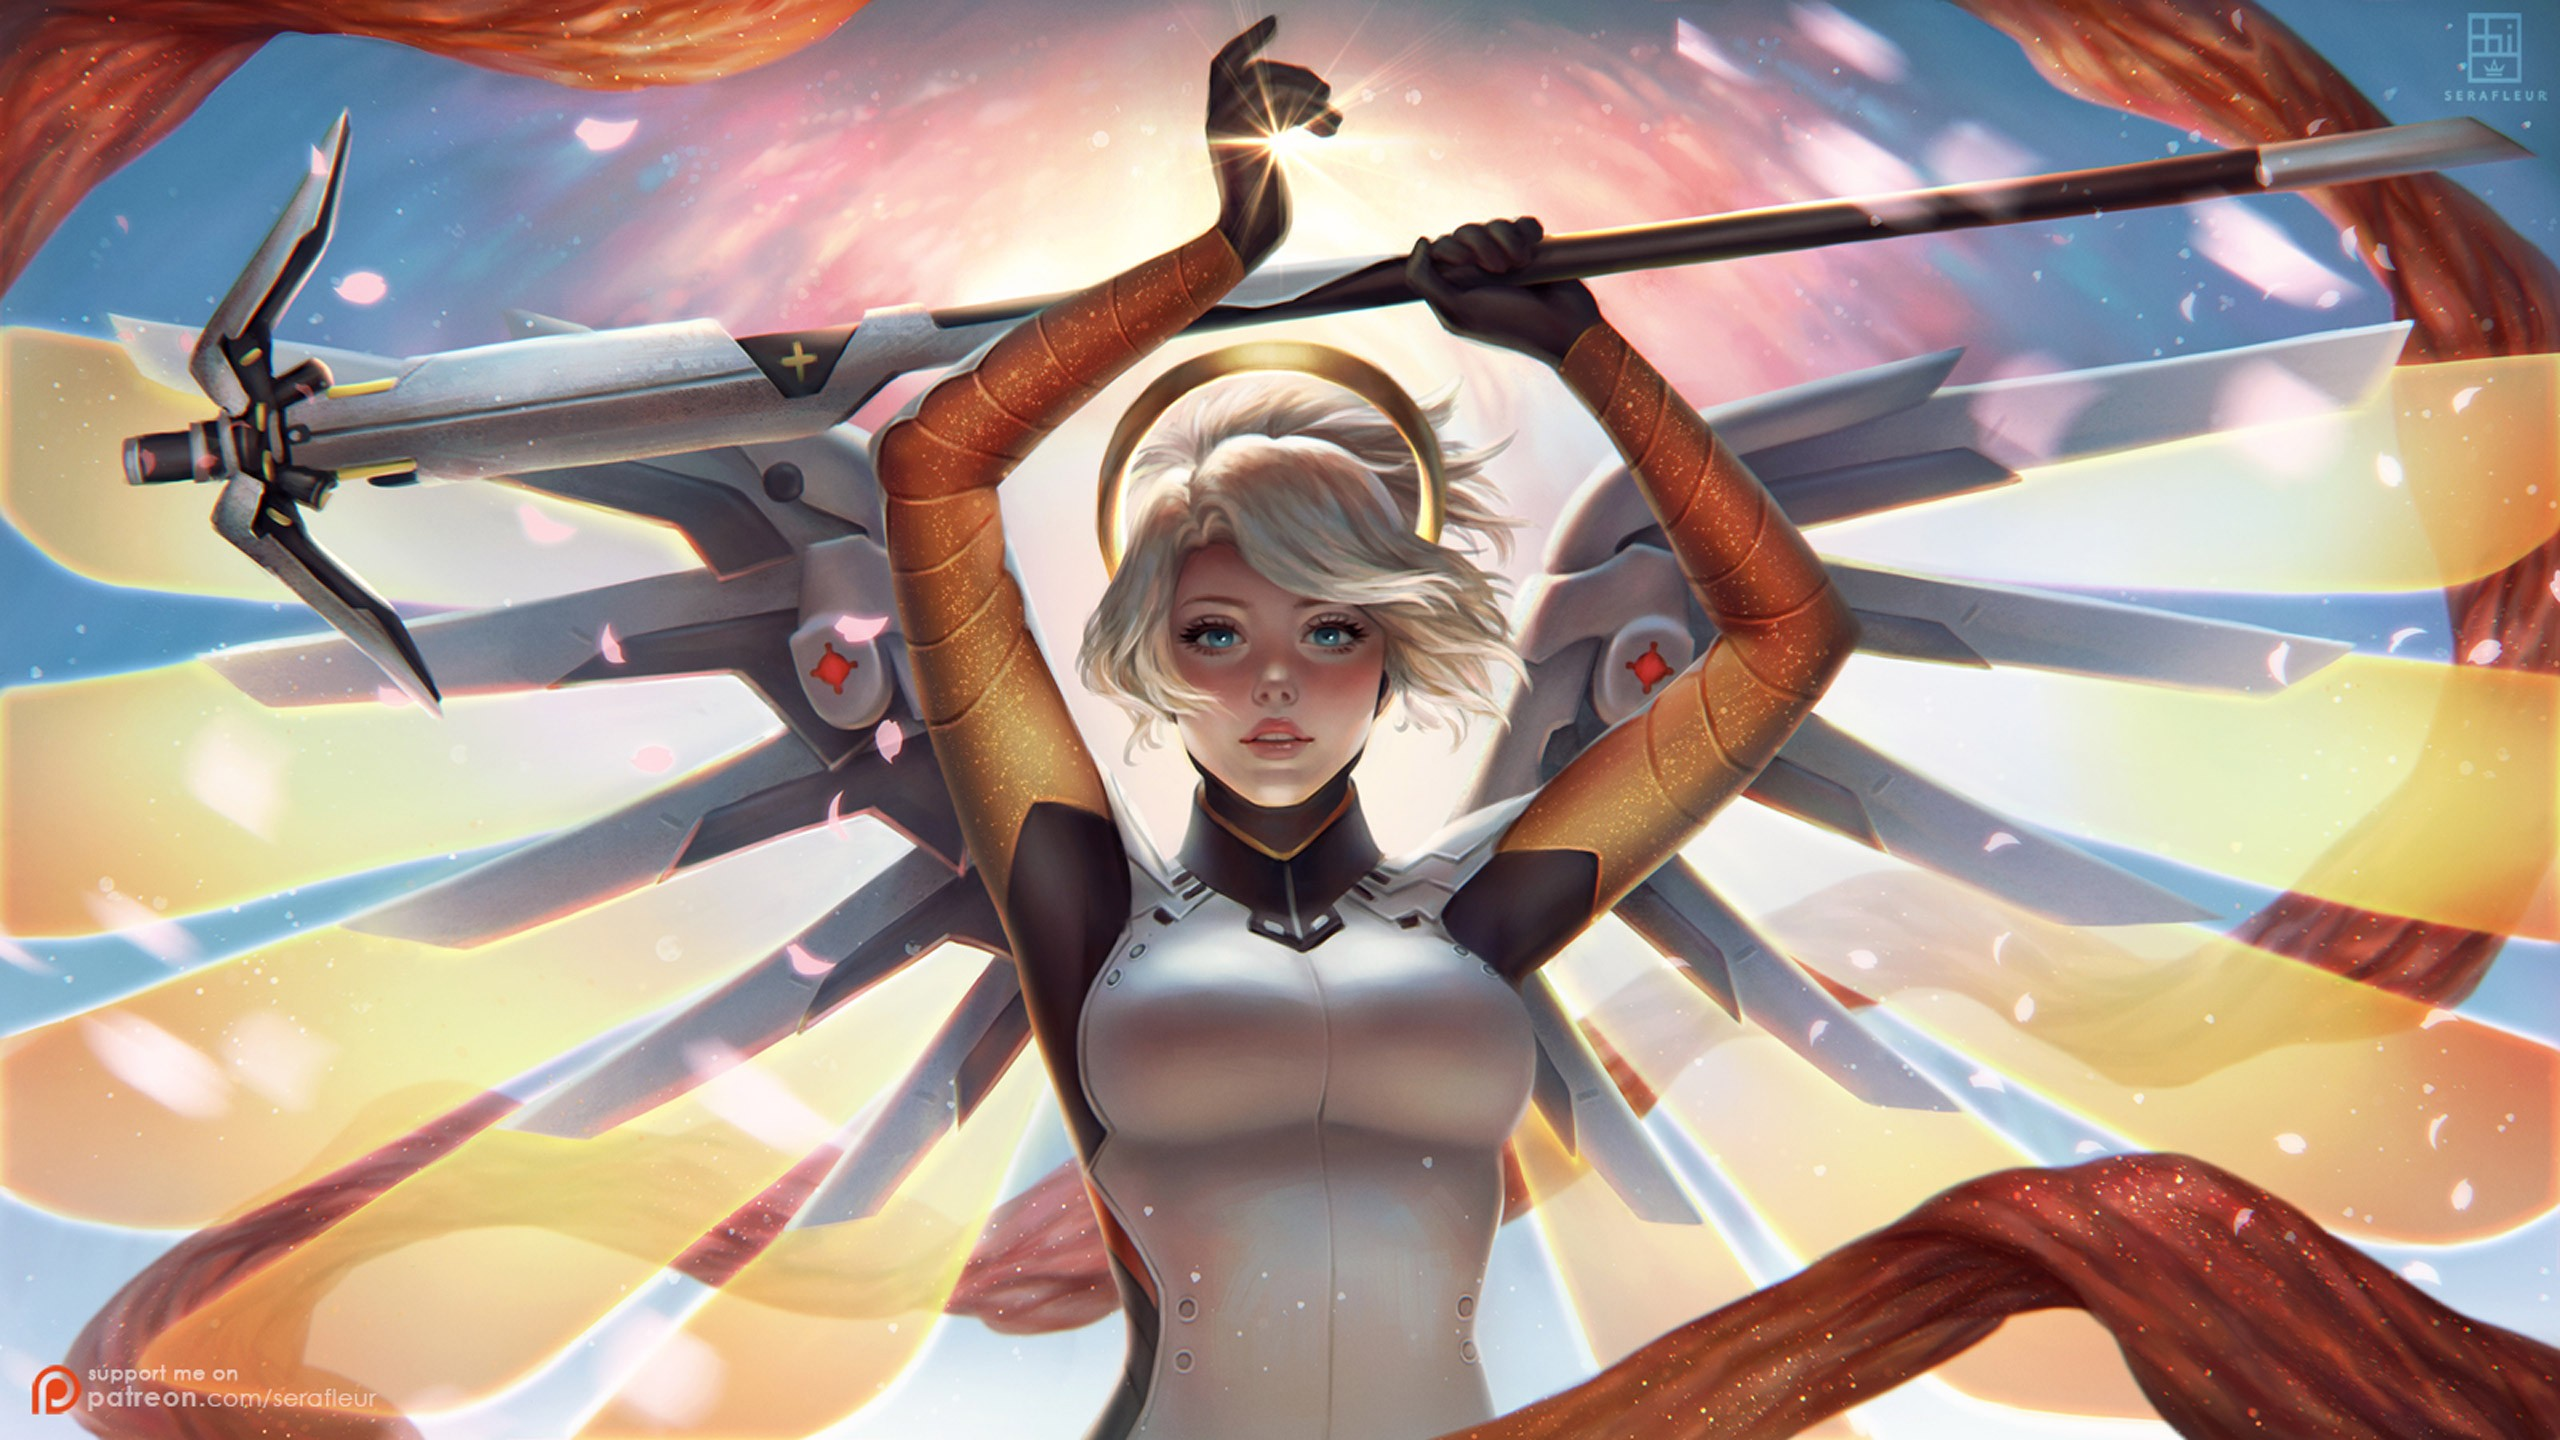 Mercy Overwatch wallpaper ·① Download free cool full HD ...